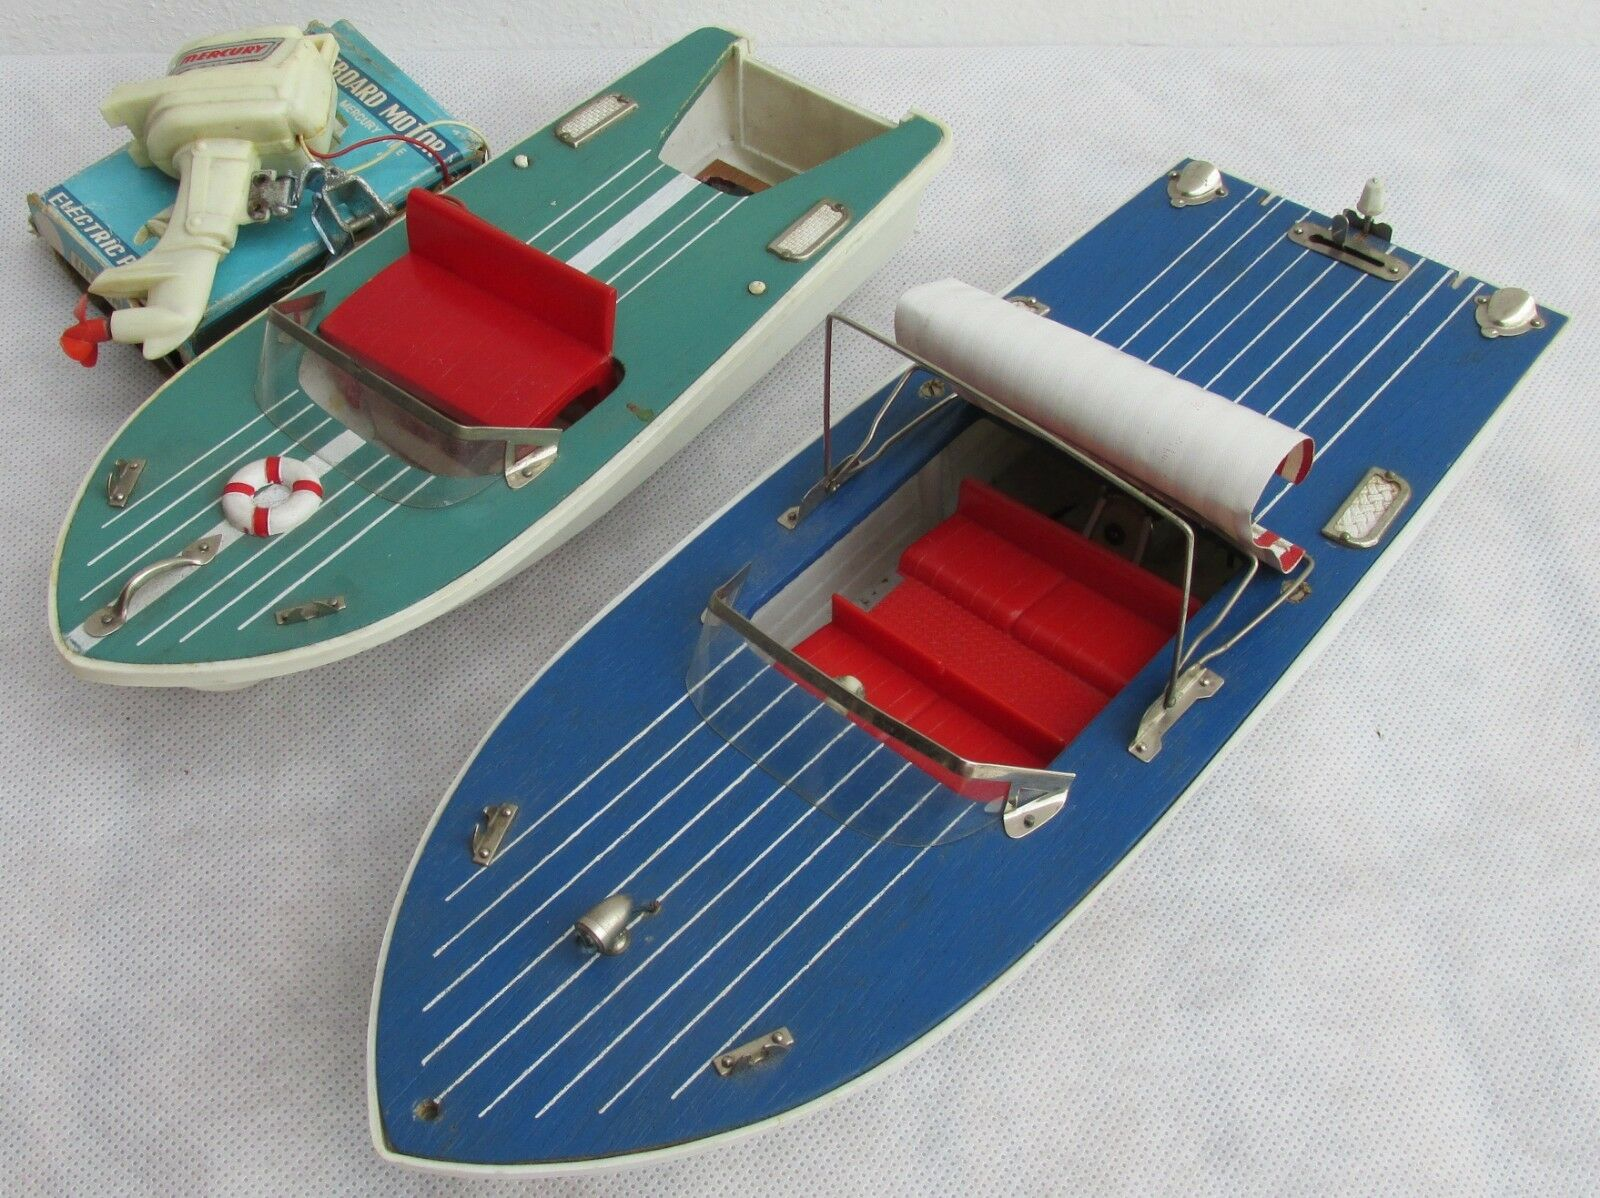 VINTAGE JAPAN SPEEDBOATS, NOT TESTED, OUTBOARD MOTOR, MOTORBOAT, BATTERY POWERED